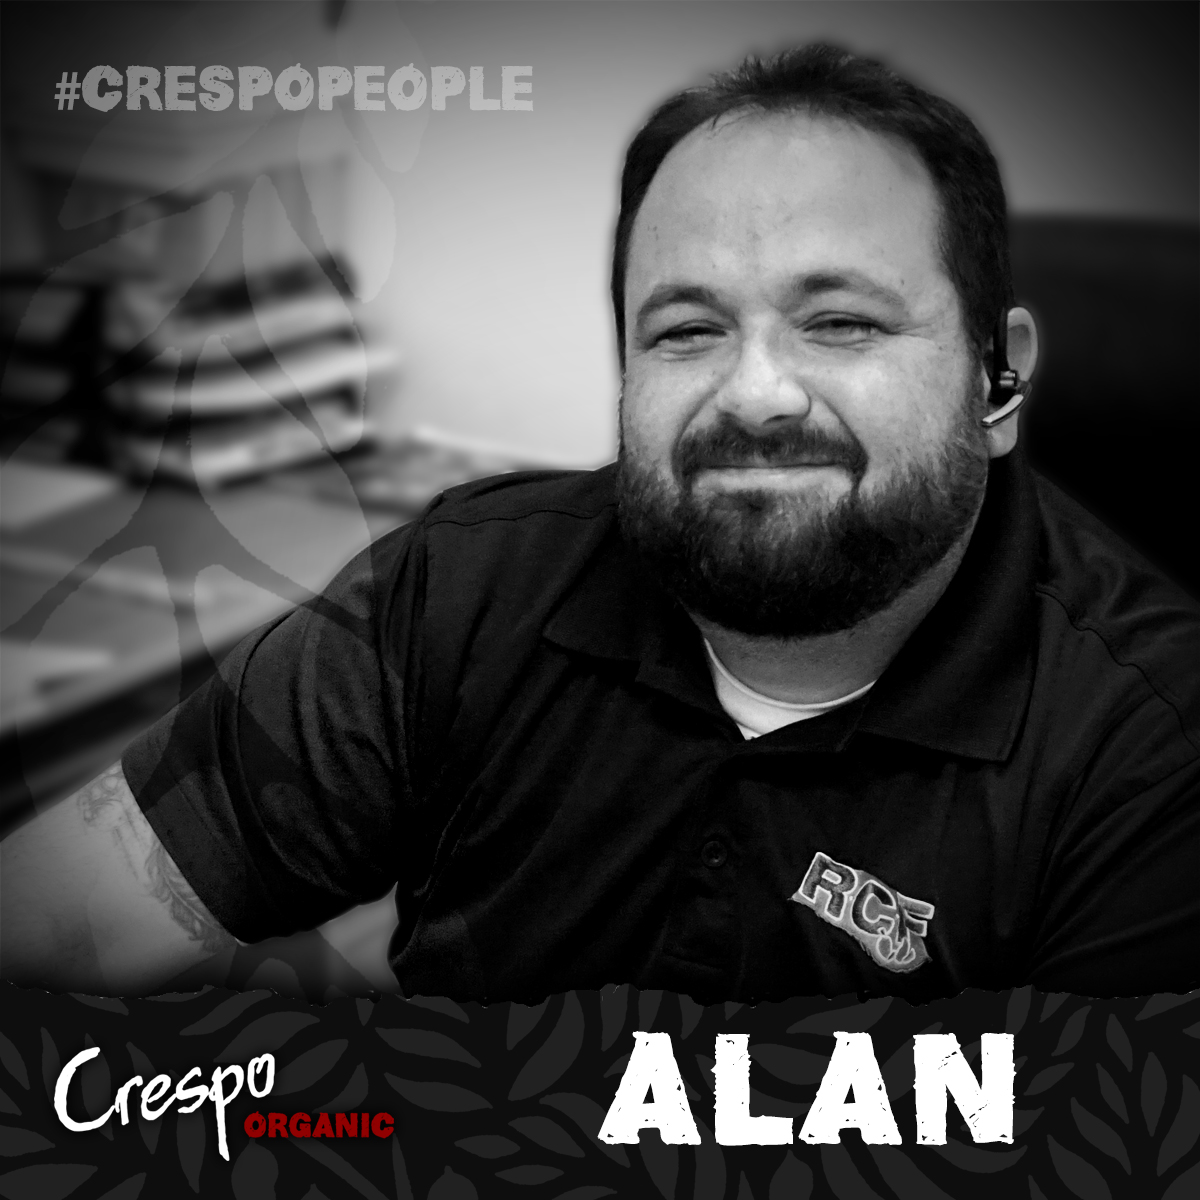 #CrespoPeople Alan